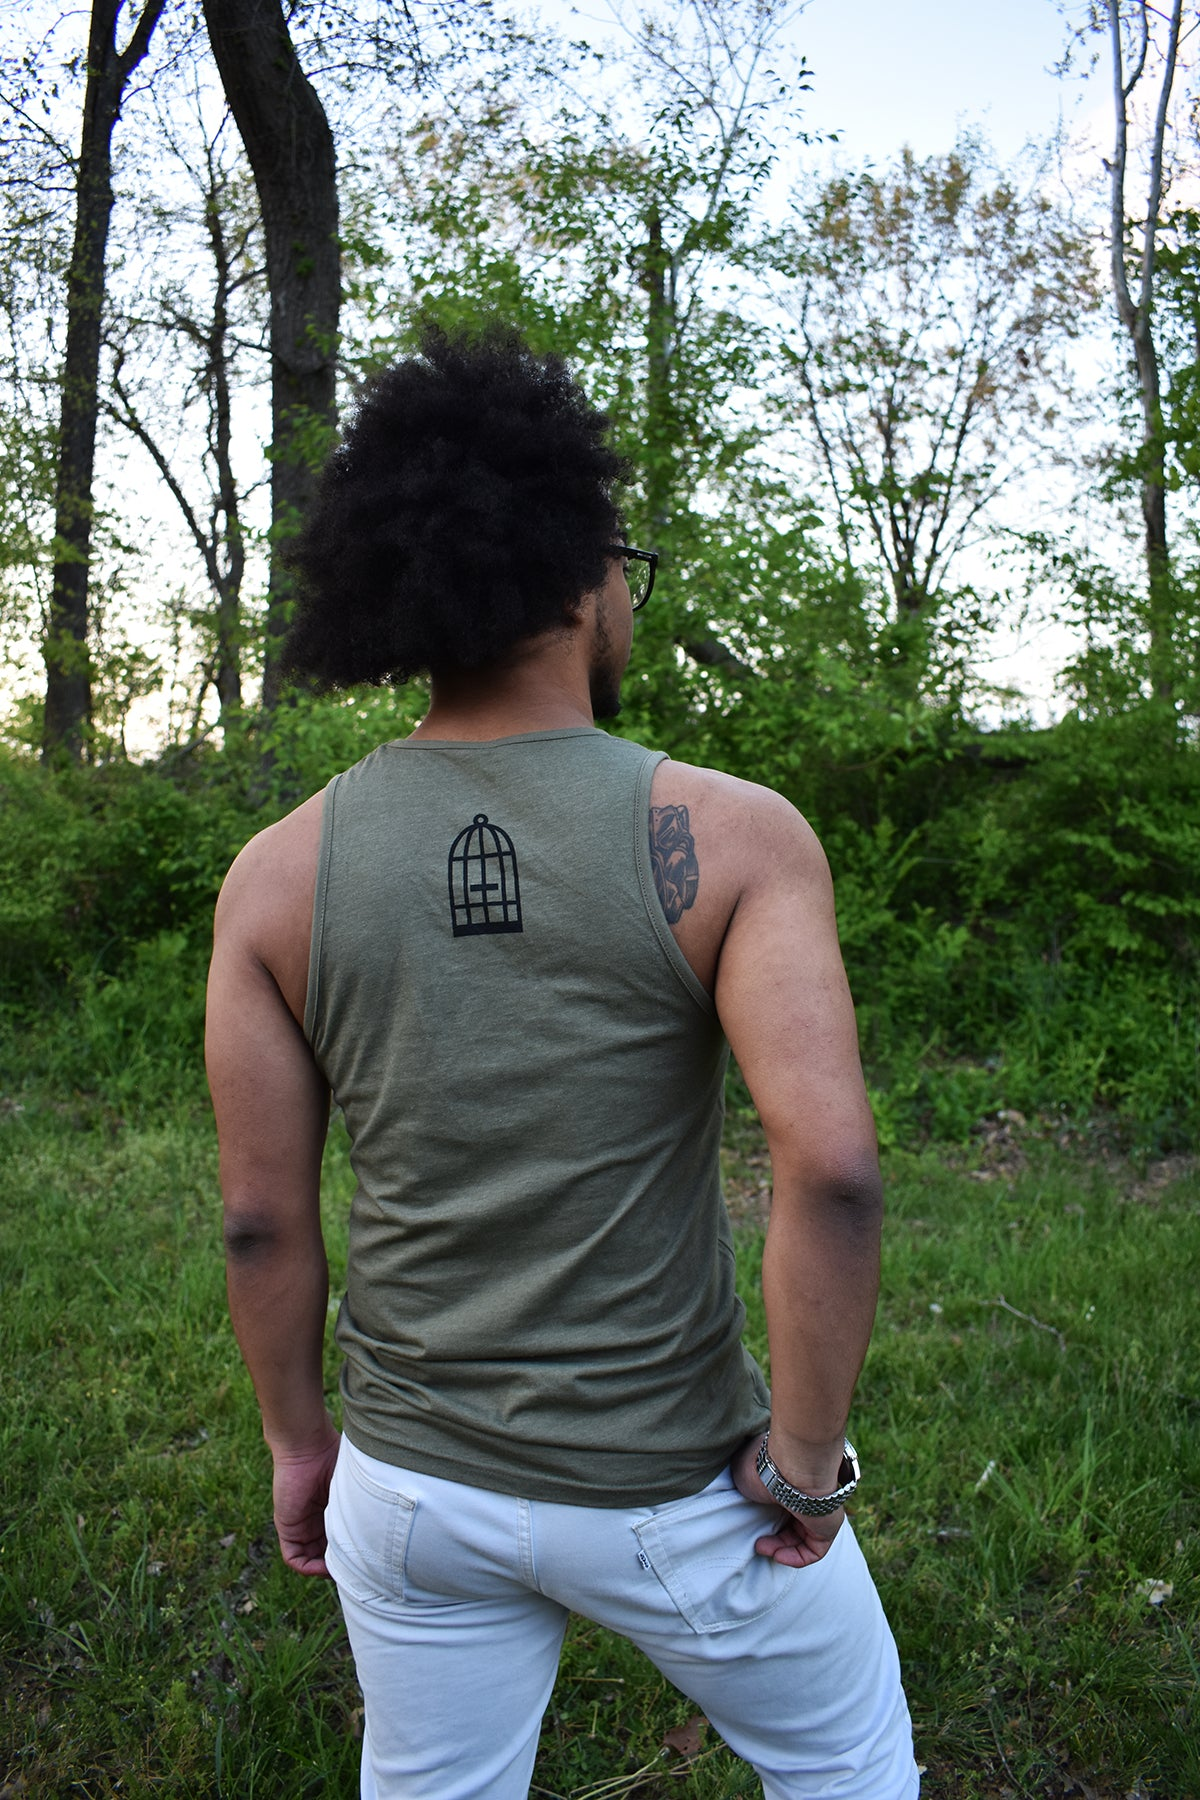 Male model wearing a green tank top a small No Egrets Birdcage logo in black on the back between the shoulders.